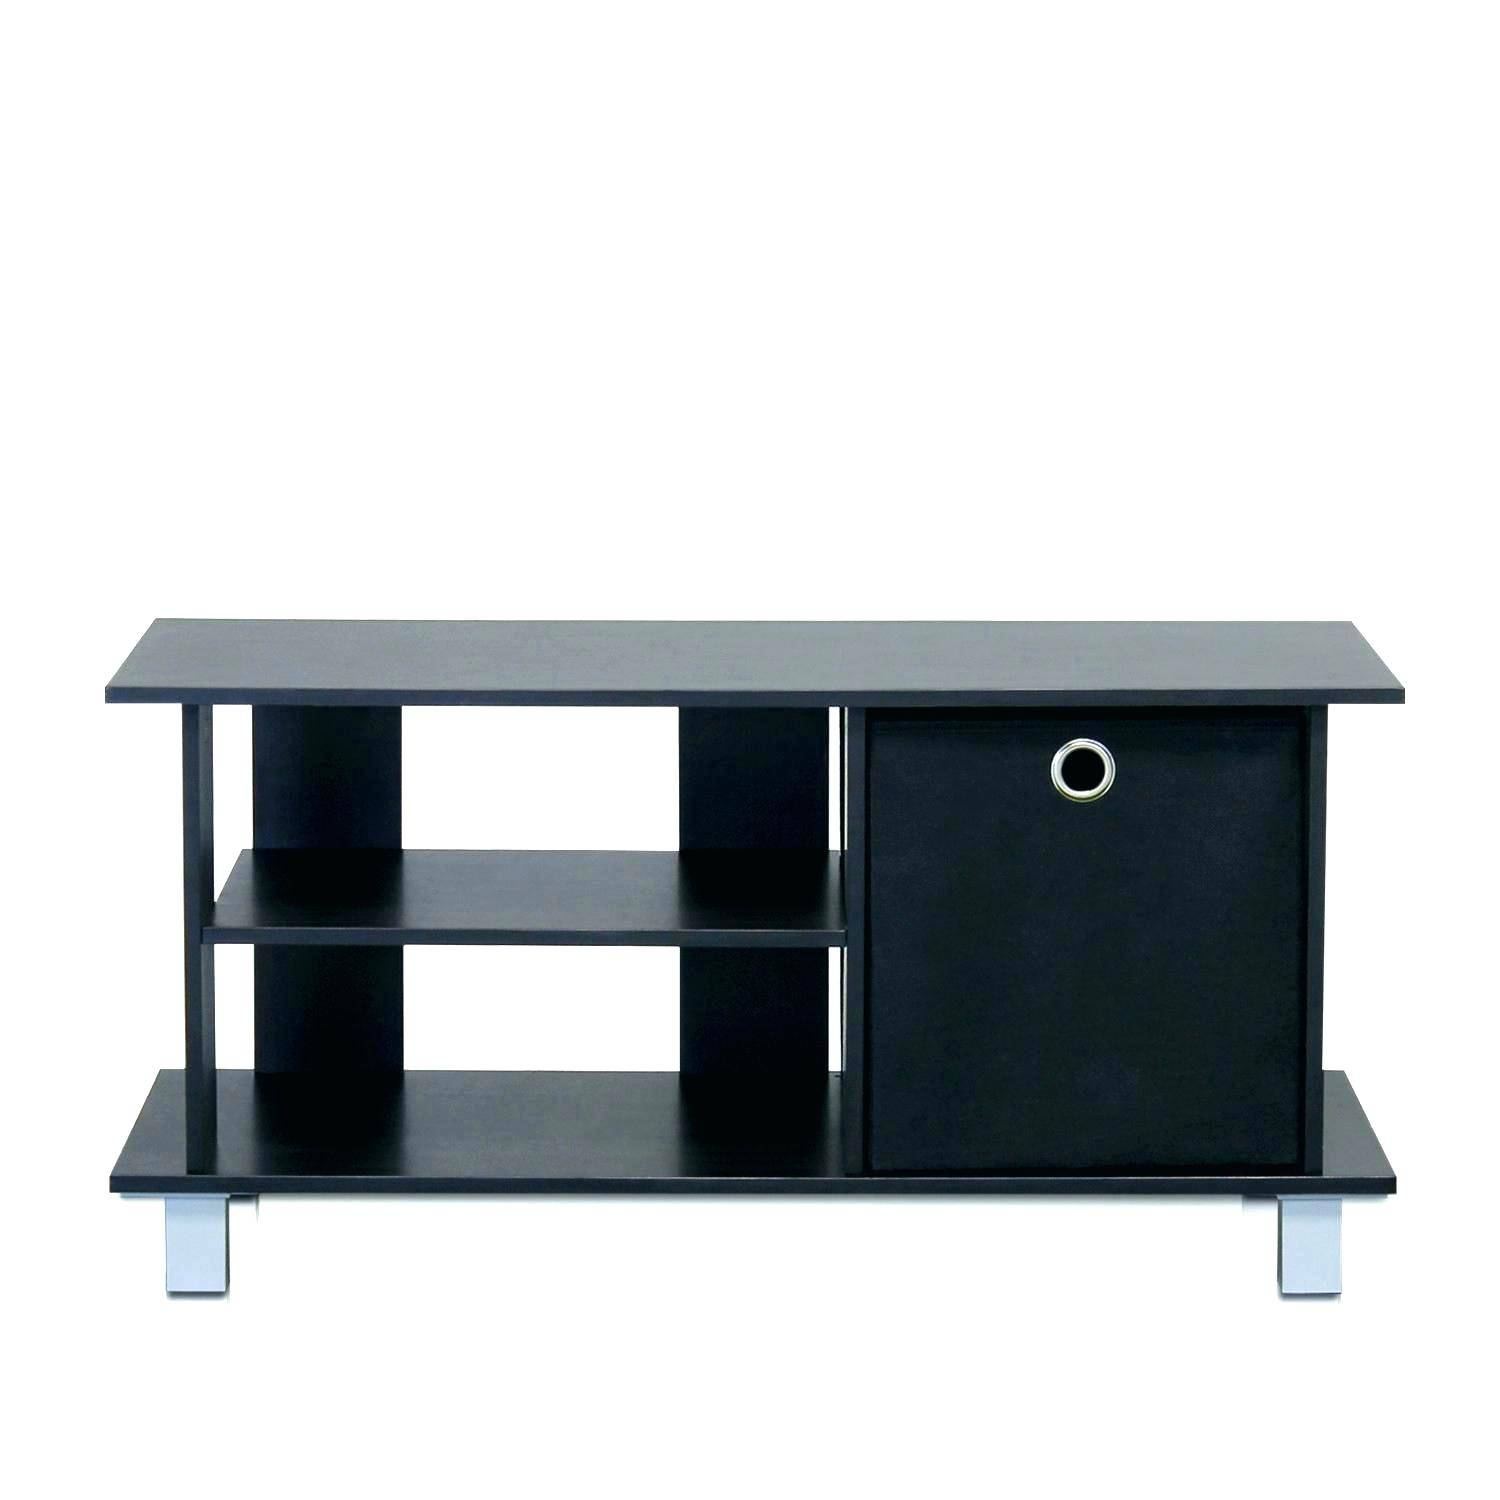 Tv Stand : Contemporary Tv Stands 118 Appealing Full Image For within Yellow Tv Stands (Image 11 of 15)